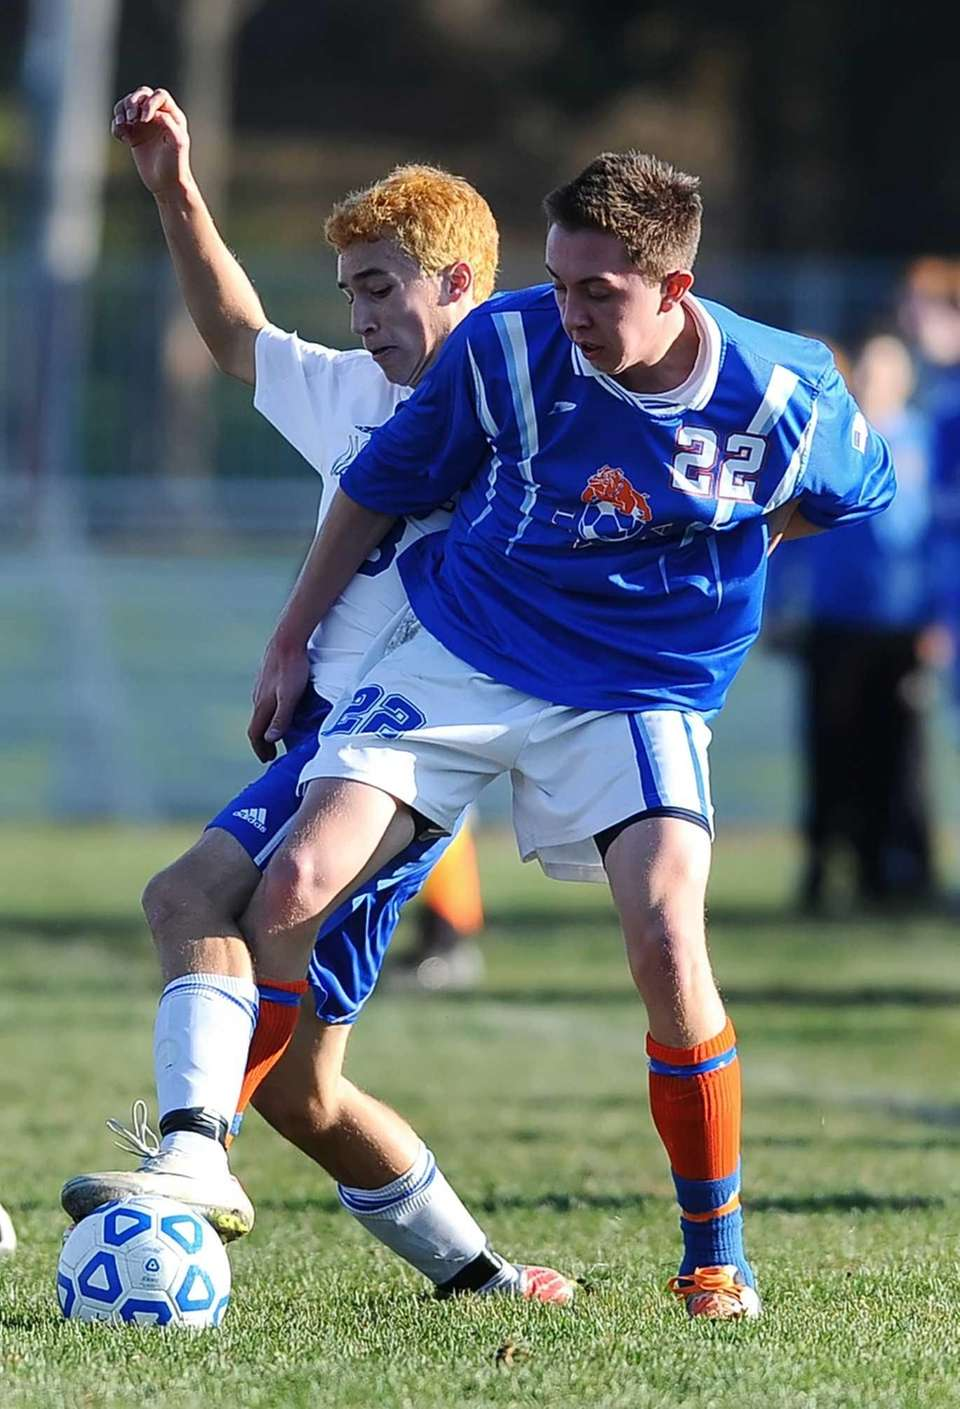 Mattituck's Walter Jacob, left, reaches around Livonia's Cody